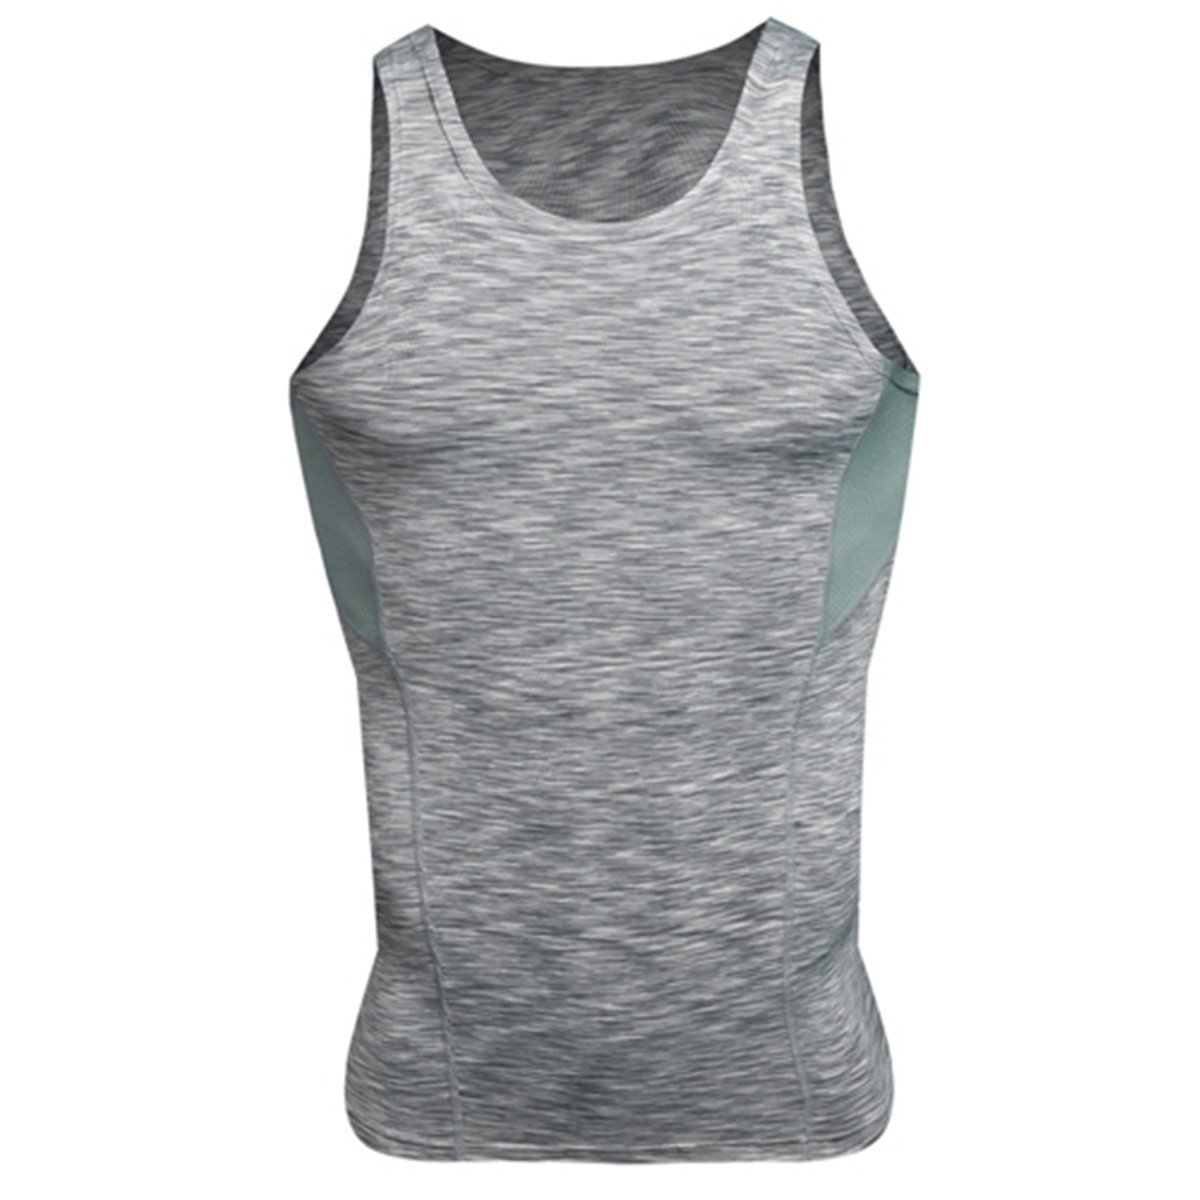 be016e243856e Amazon.com  Chiced Quick Dry Running Vest Training Sleeveless Man s T-Shirt  Workout Sport Suit Fitness Tights Gym Men Tank Top  Clothing